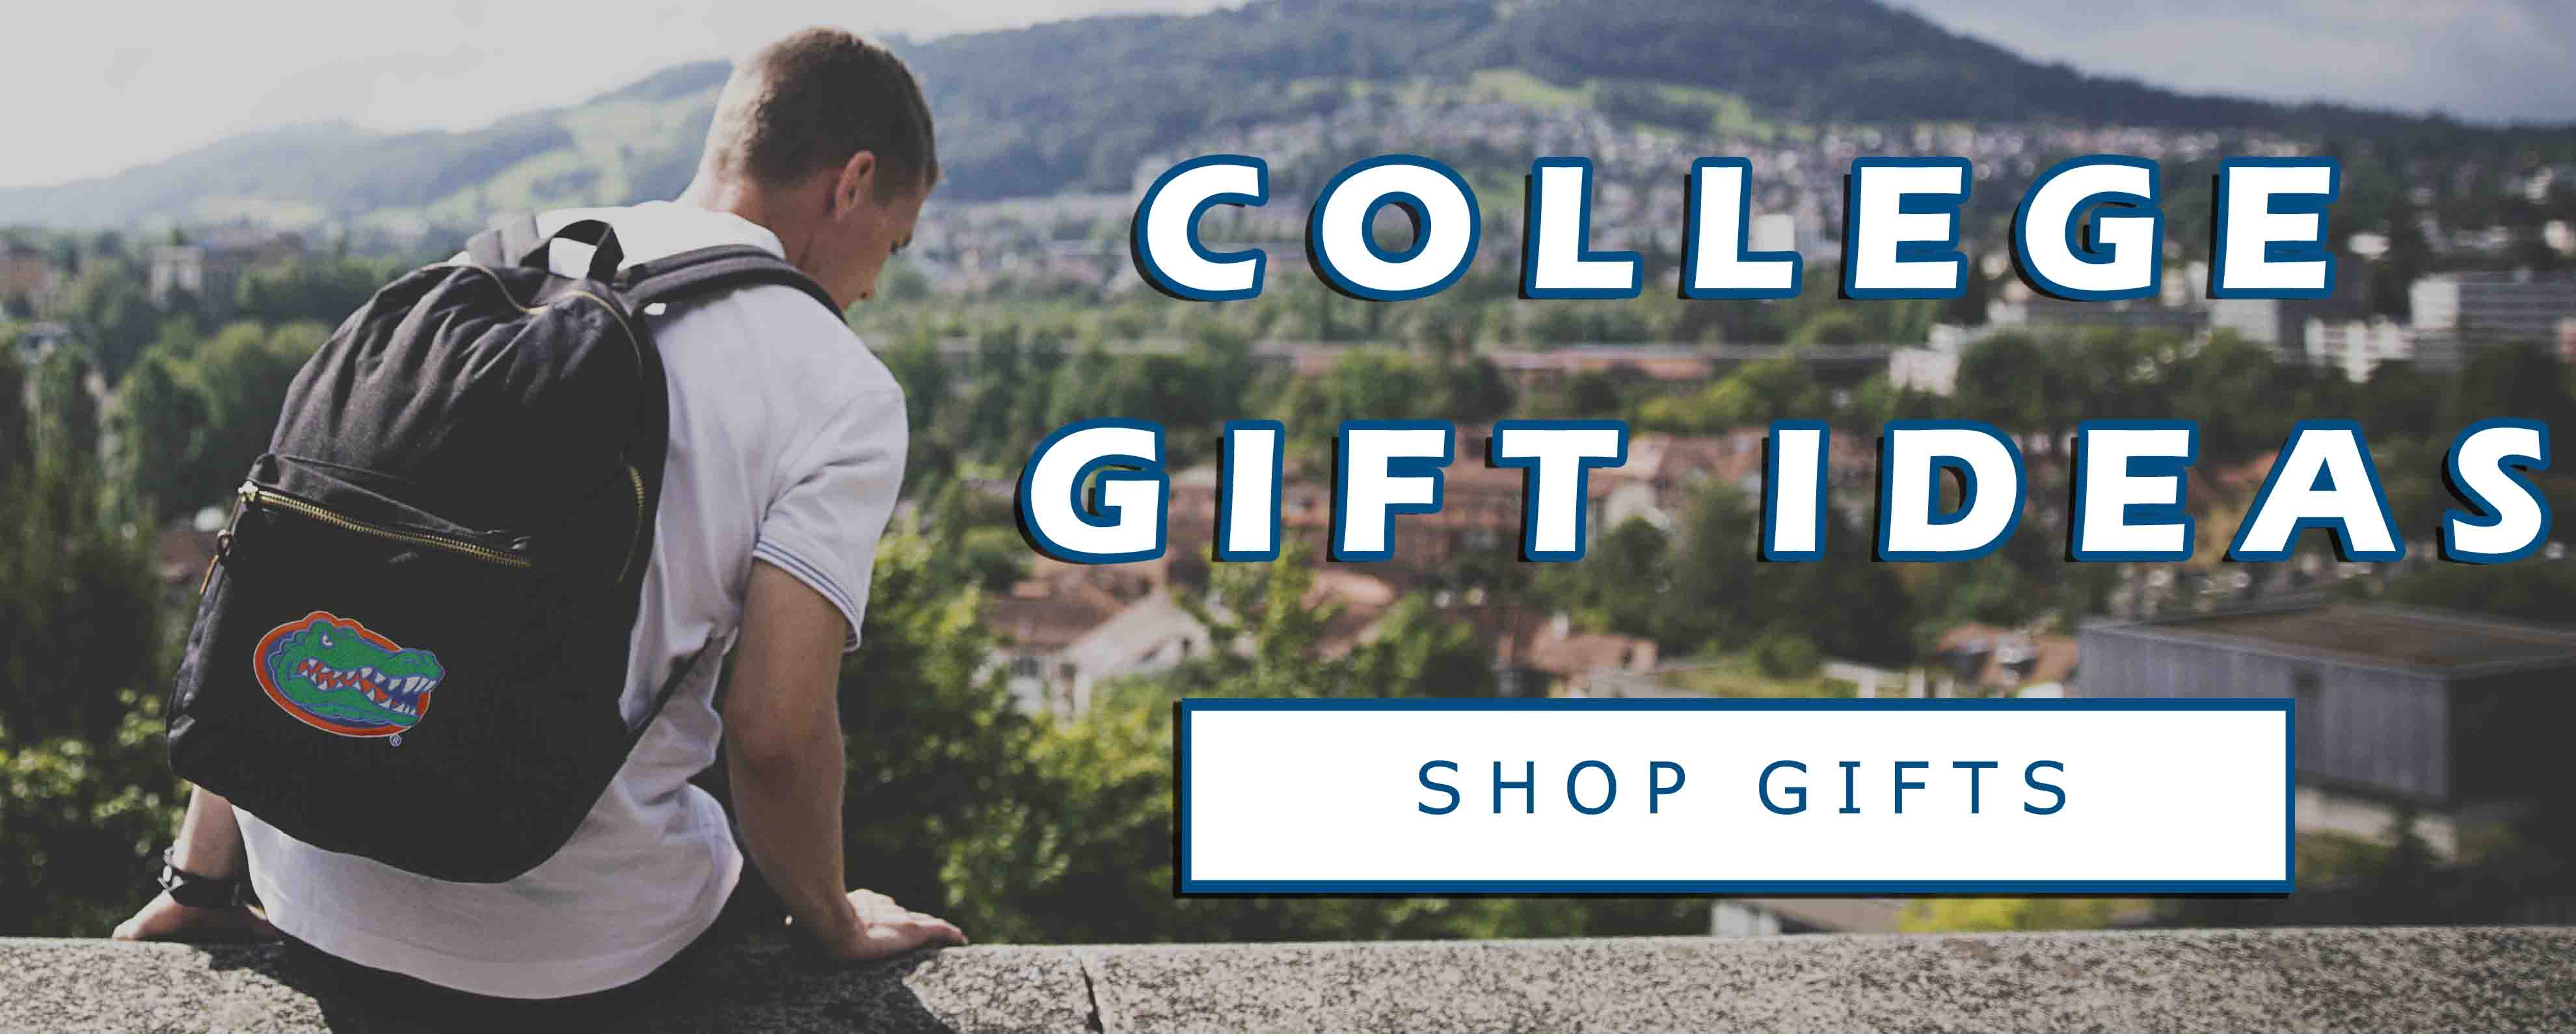 College Gifts for Students and Alumni